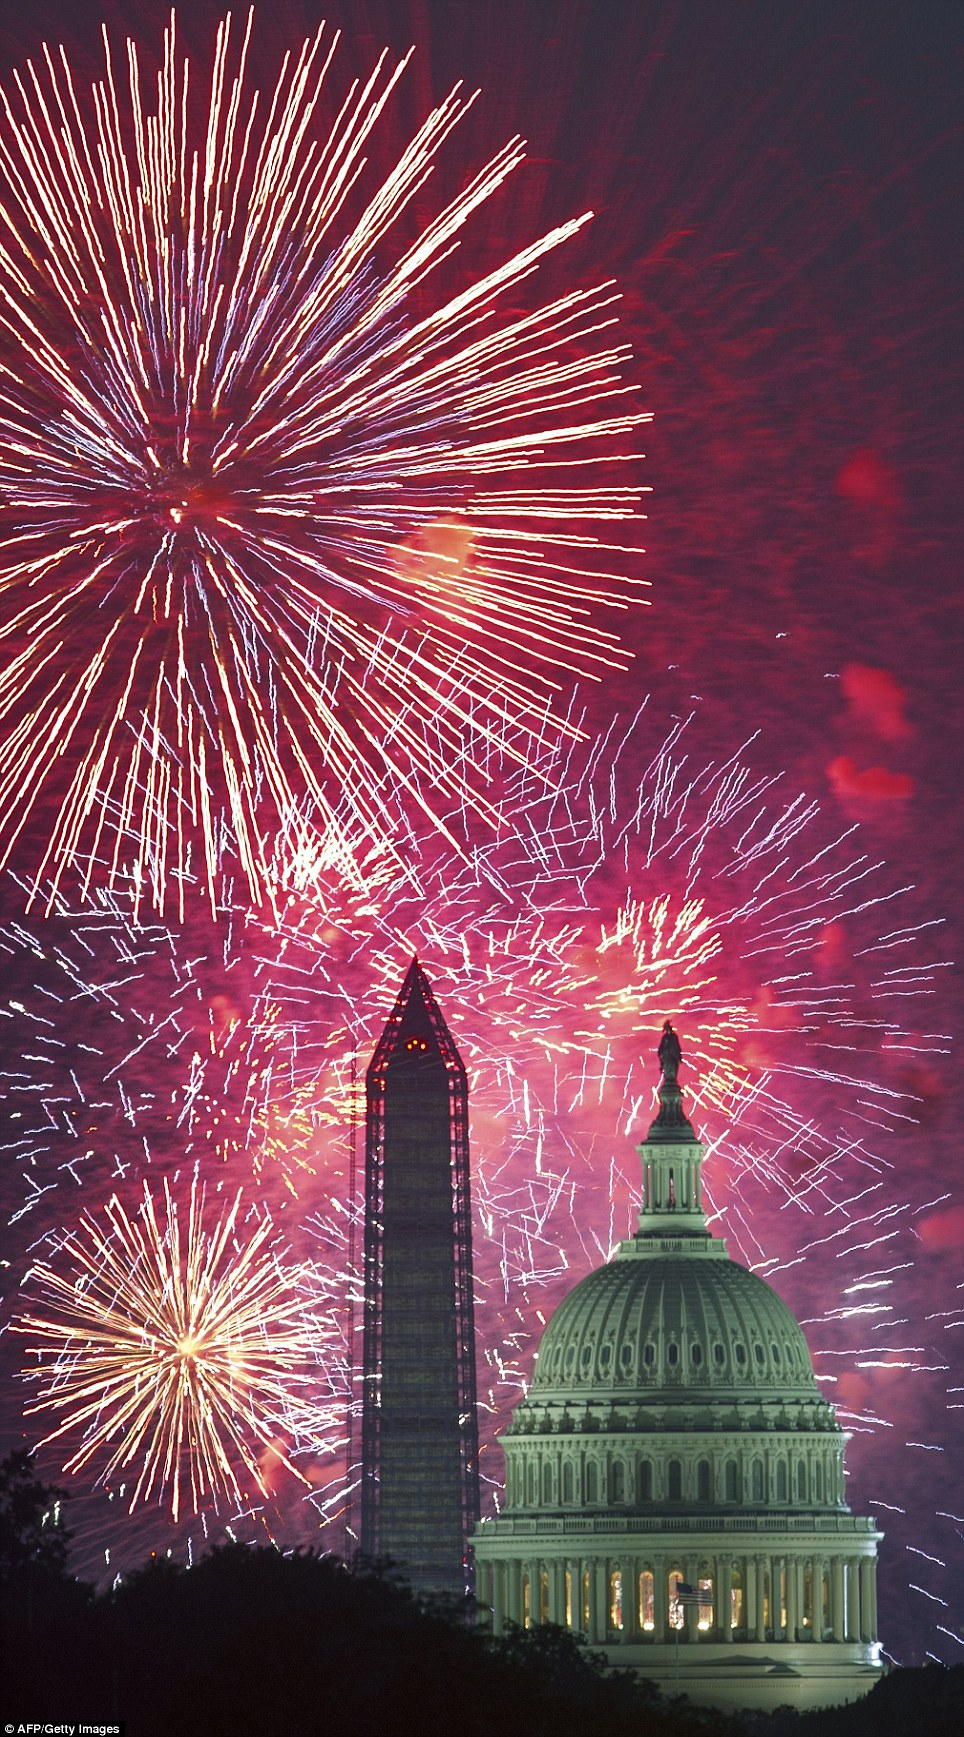 The spectacular fireworks were seen over the US Capitol and Washington Monument July 4, 2013